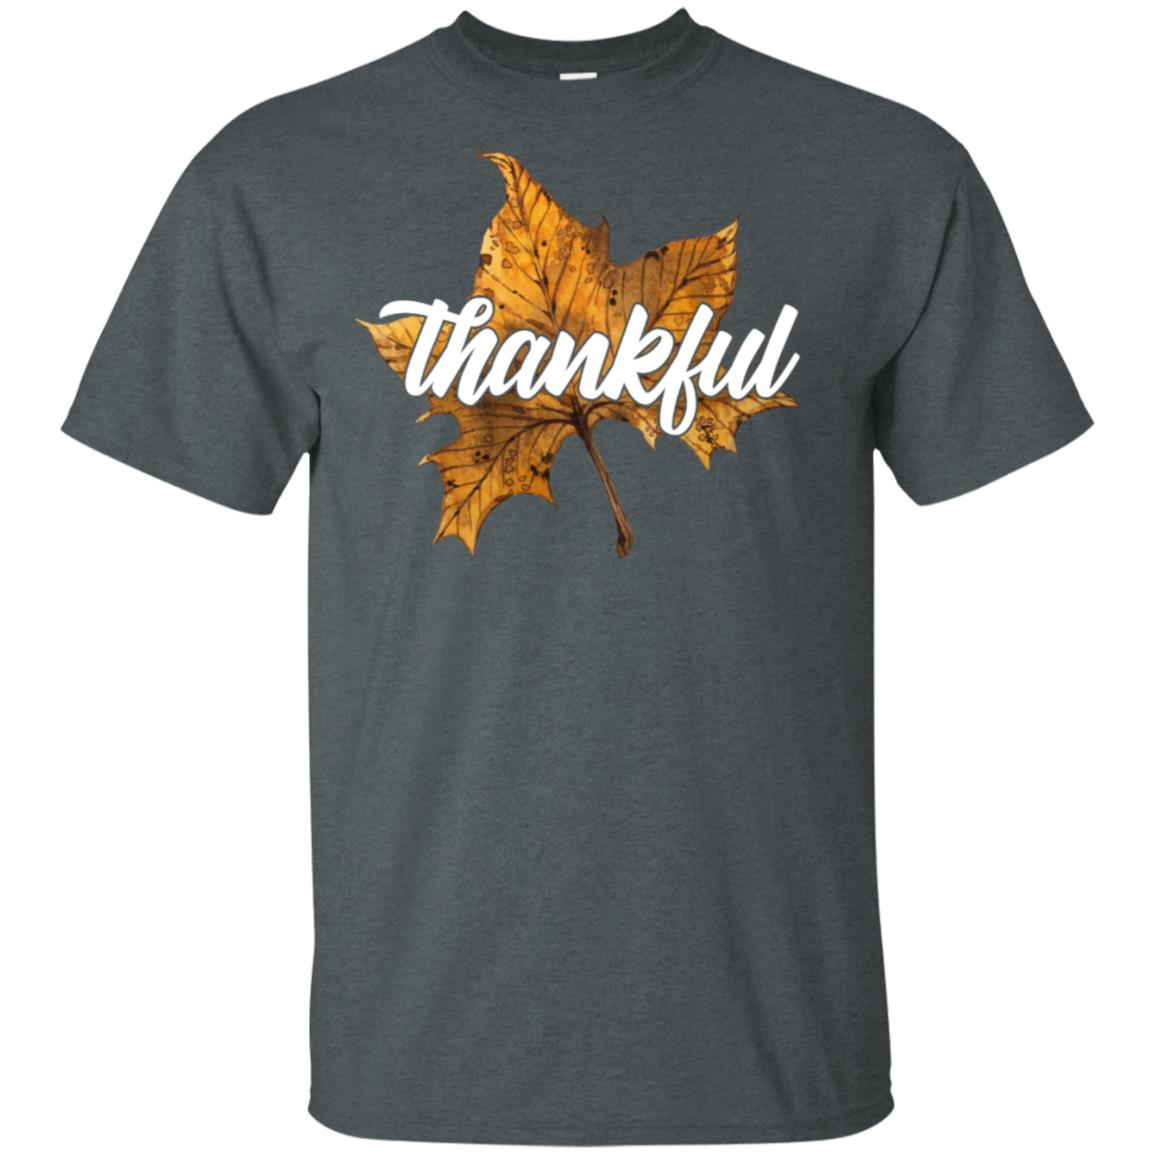 Autumn Leaves Thanksgiving Festival Holiday Gift Unisex Short Sleeve